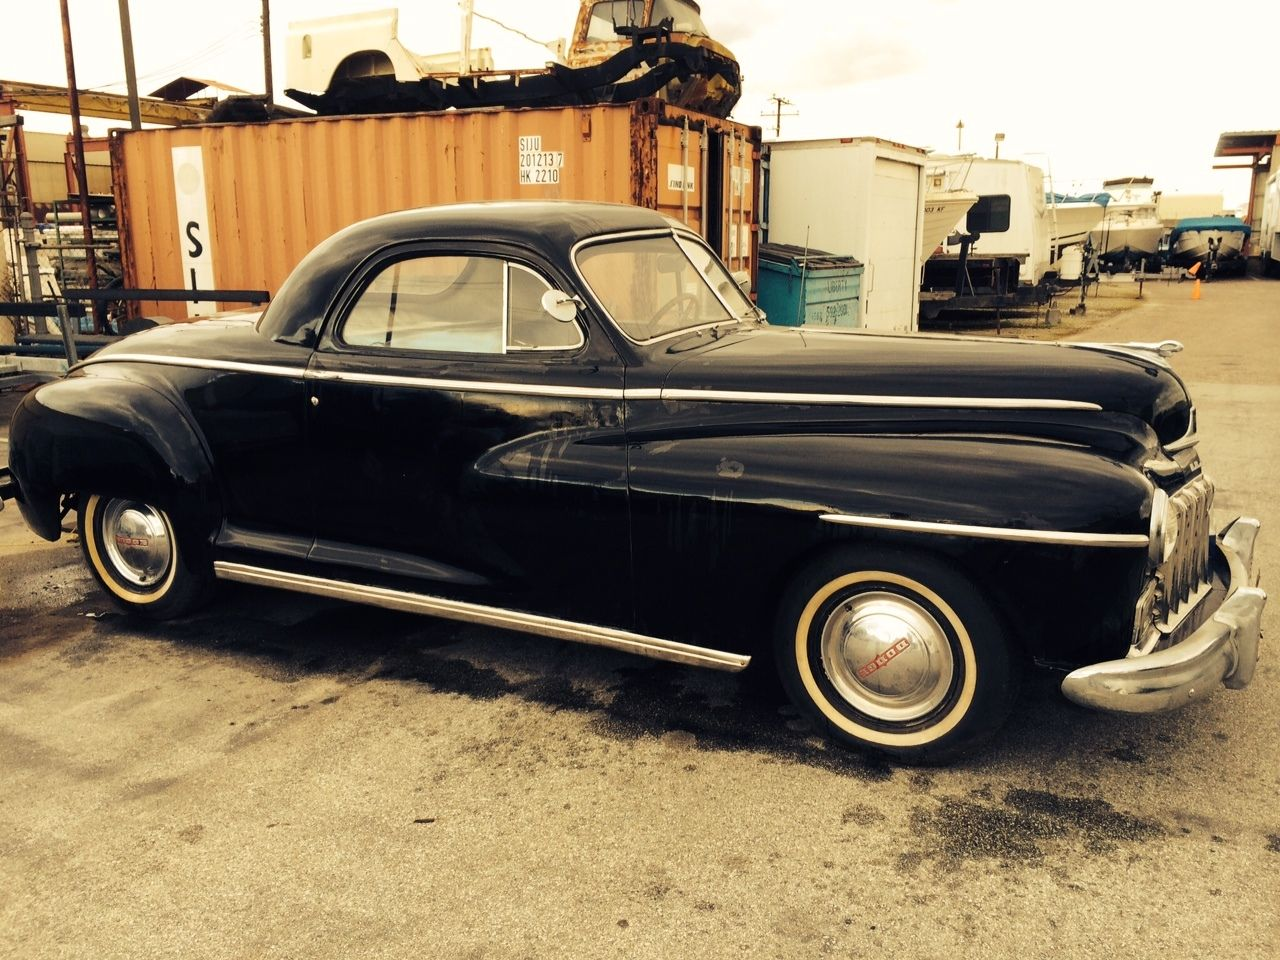 Interior clear glass door - 1946 Dodge Business Coupe Very Good Original Condition